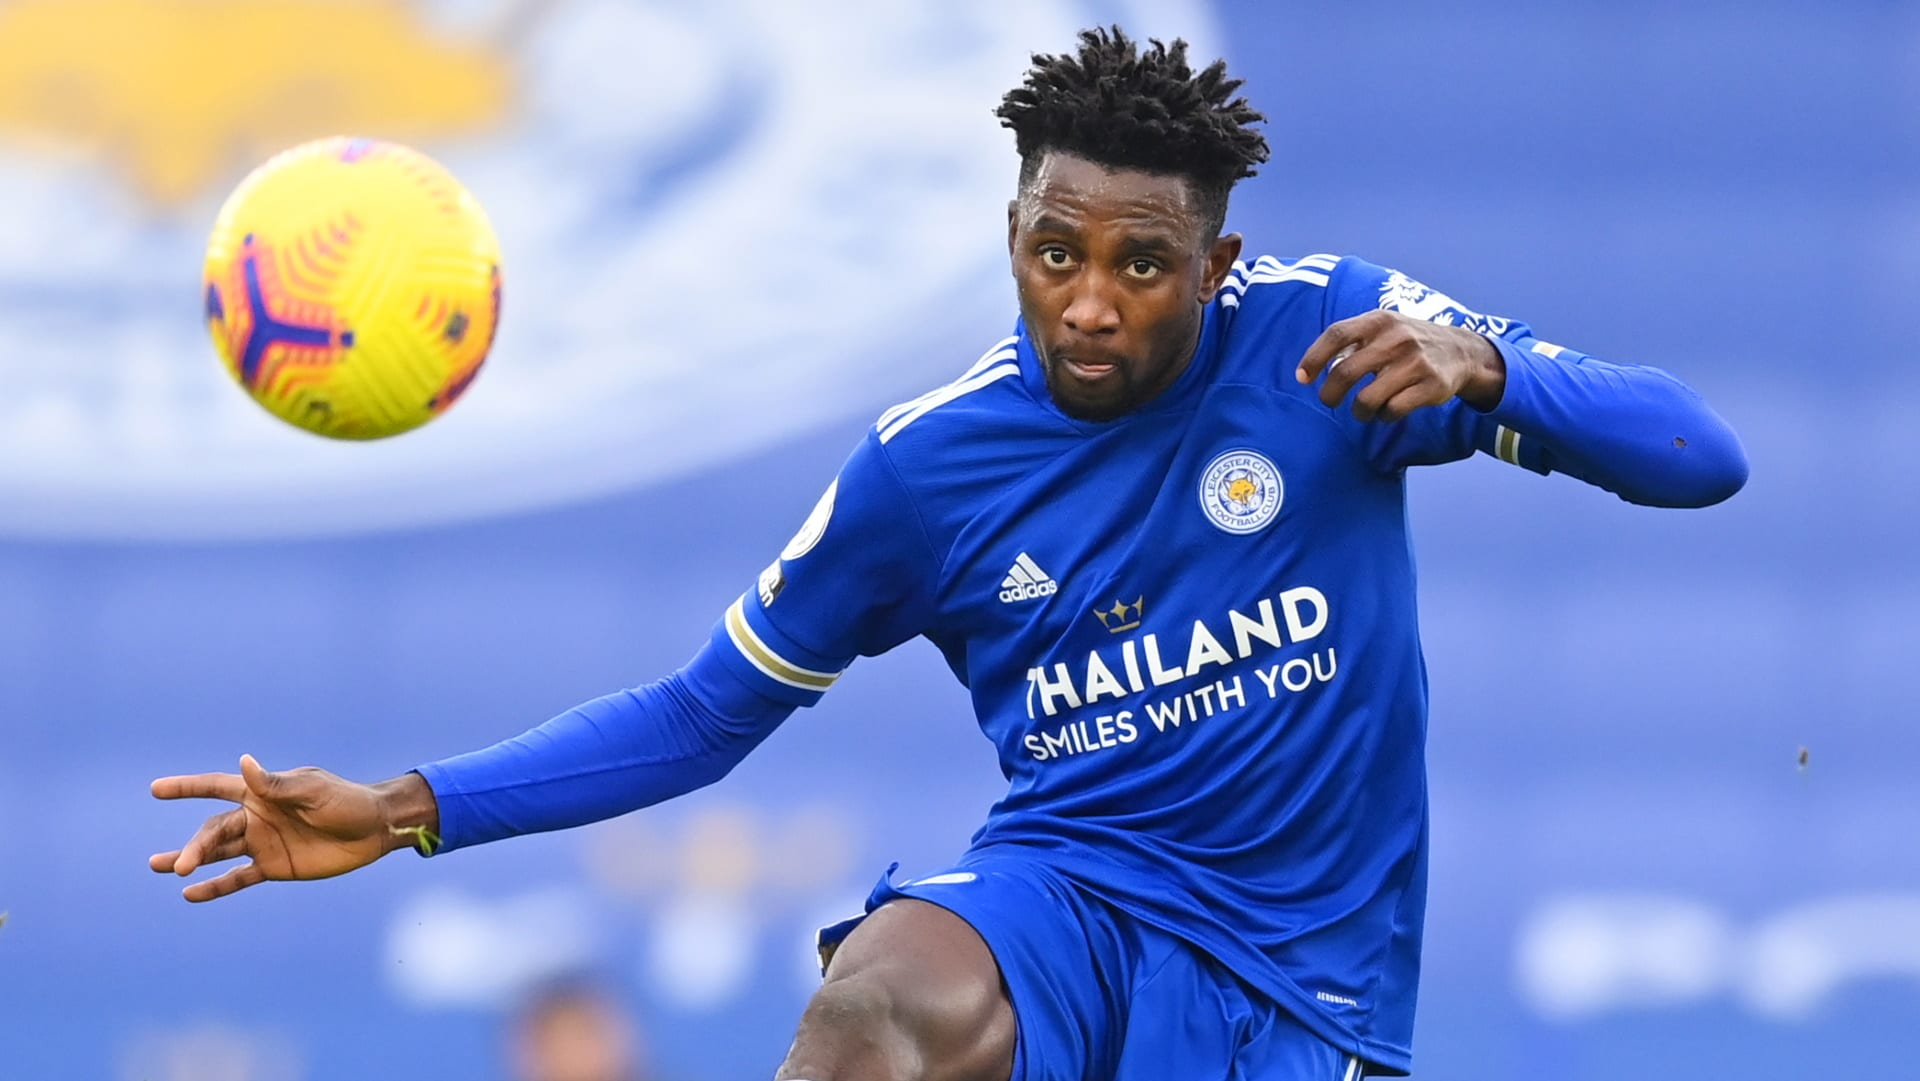 Could Wilfred Ndidi Be On The Move?